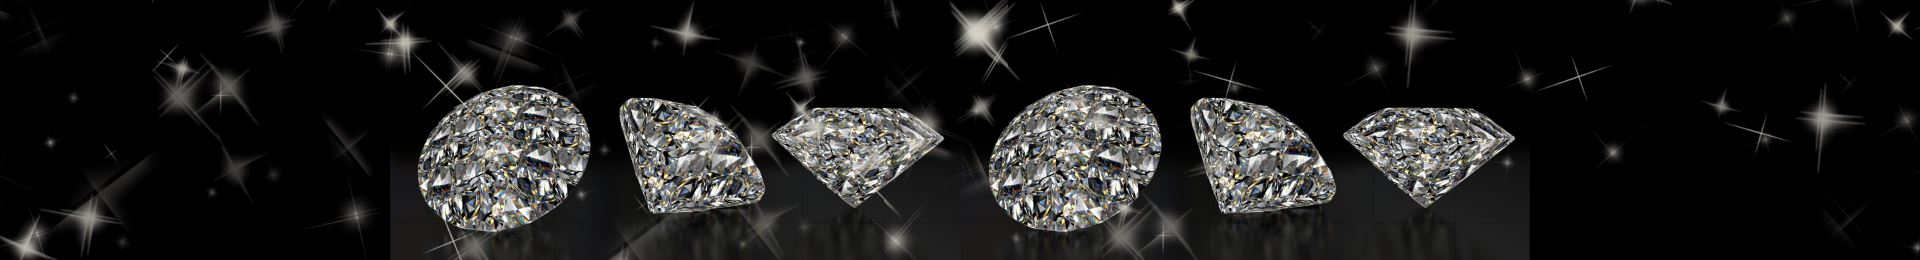 DiamondManufacturers